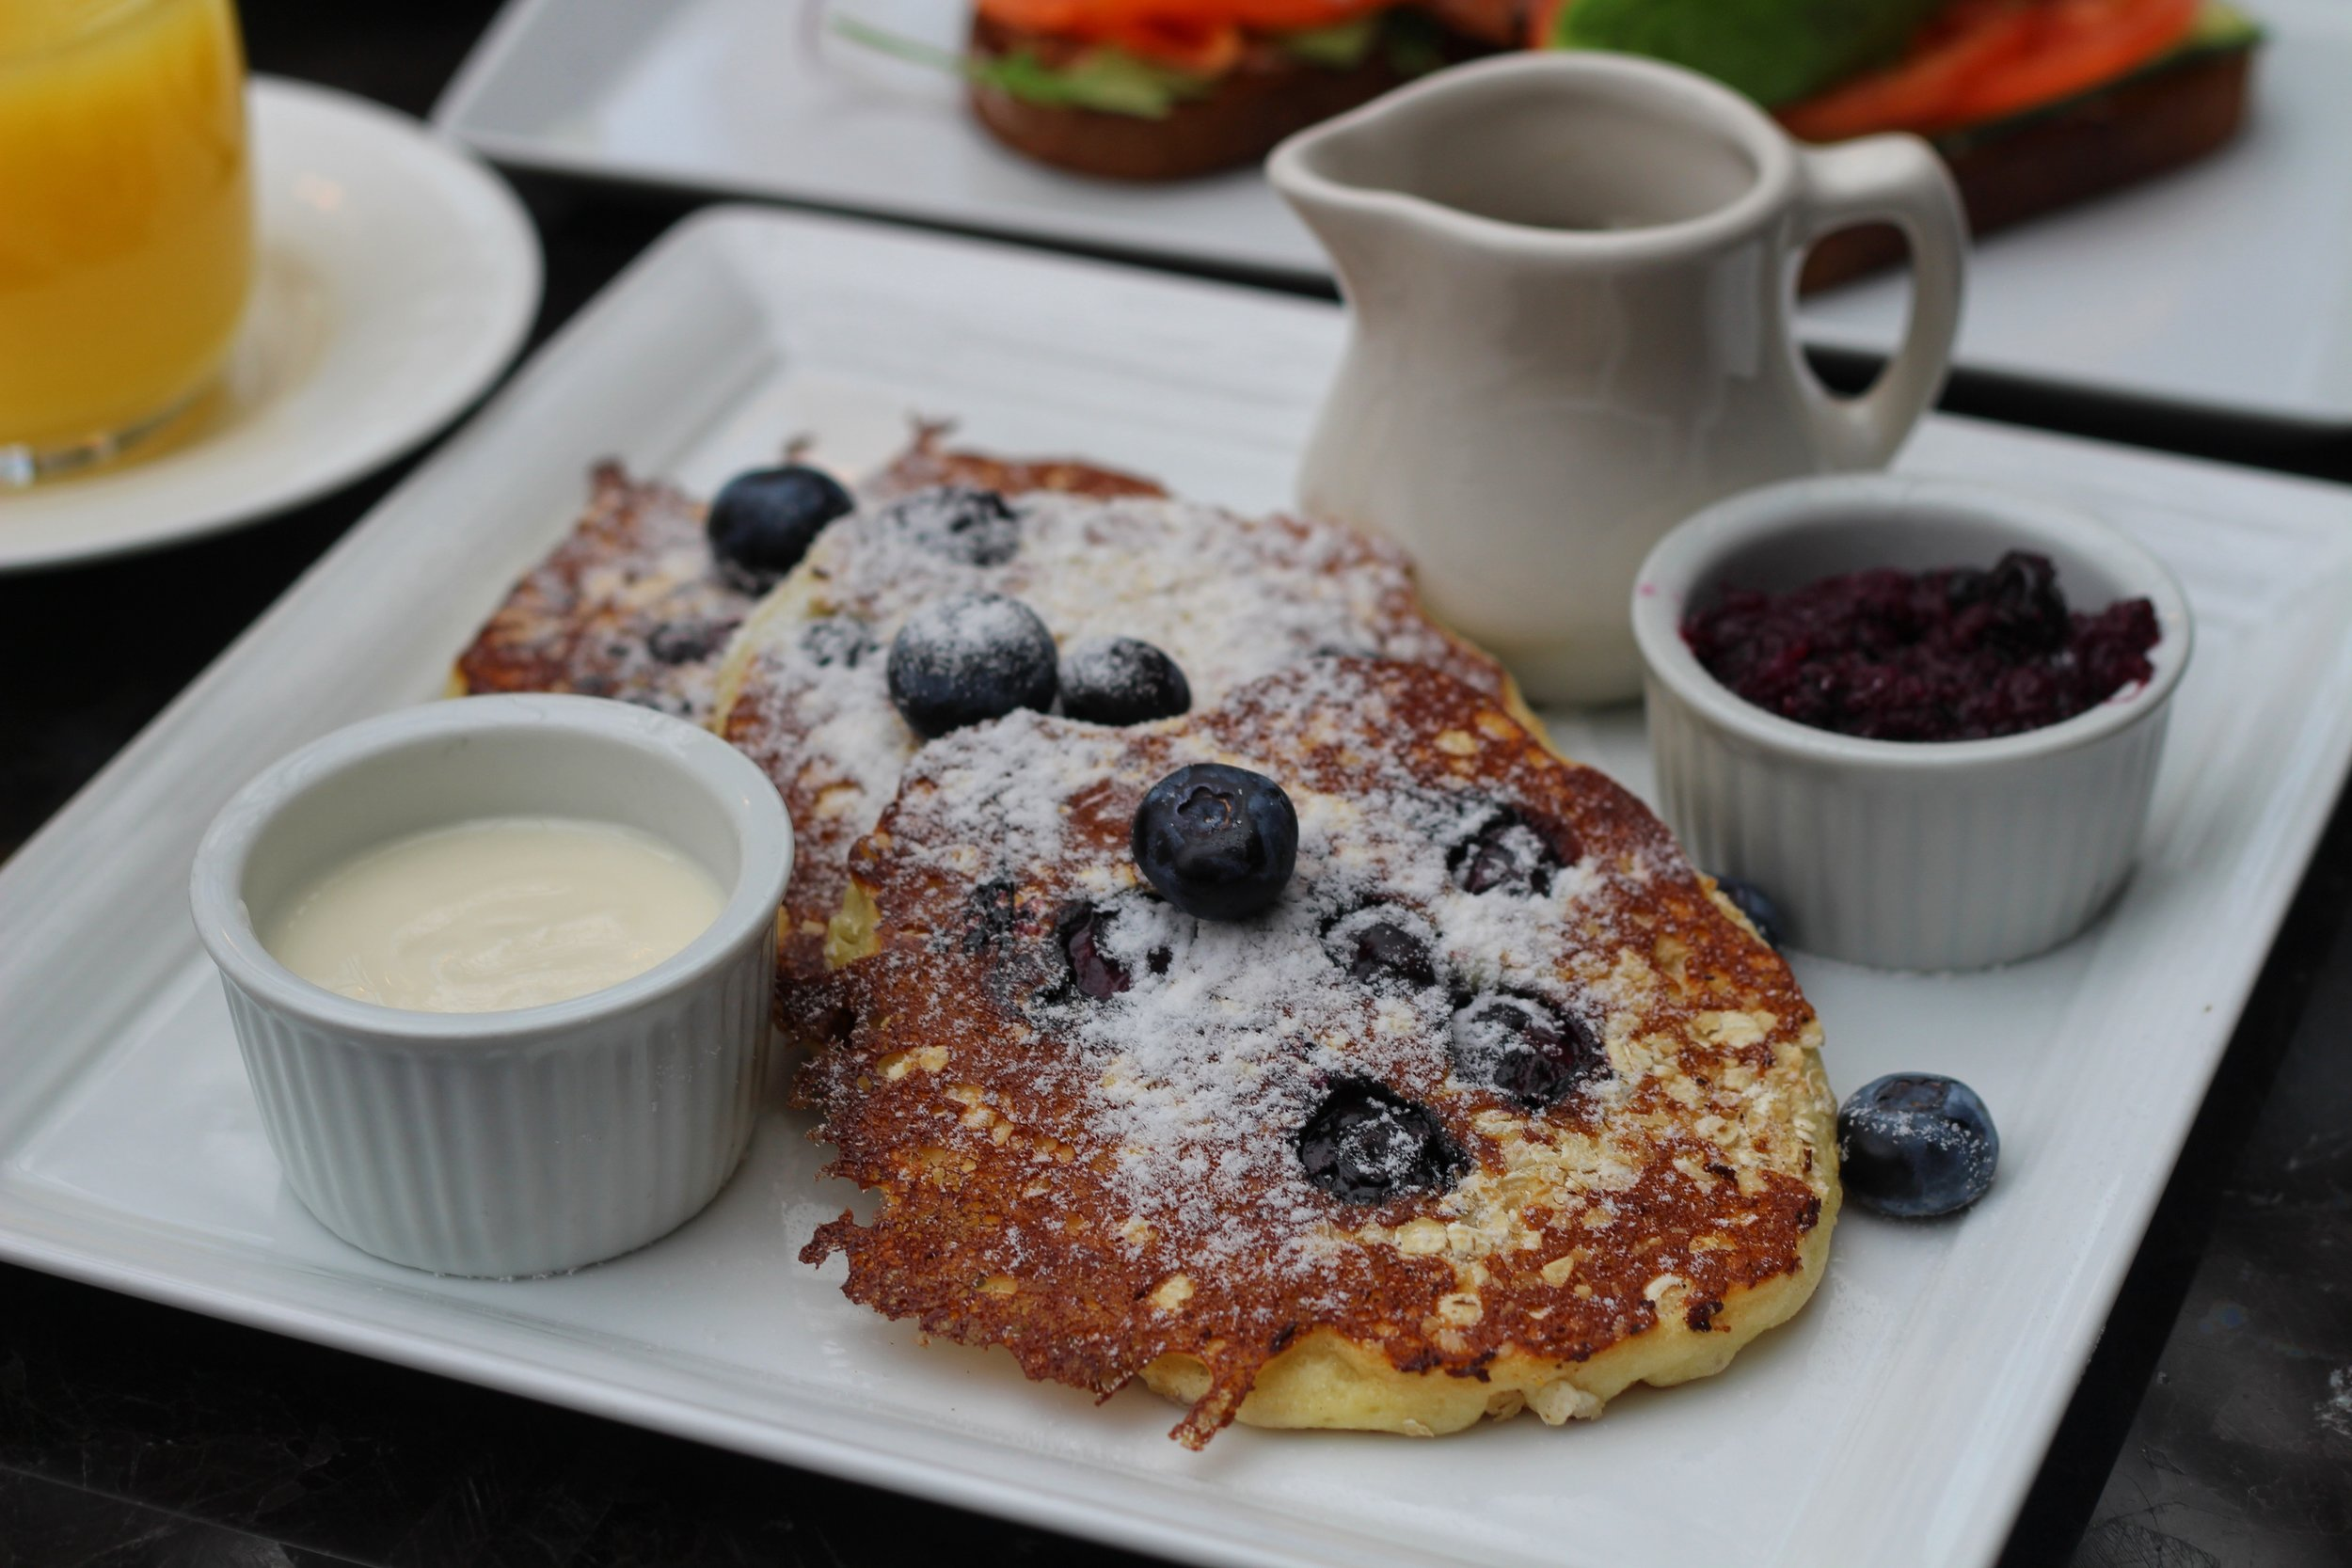 Oat & Blueberry Pancakes  - blueberries, berry compote, maple yogurt